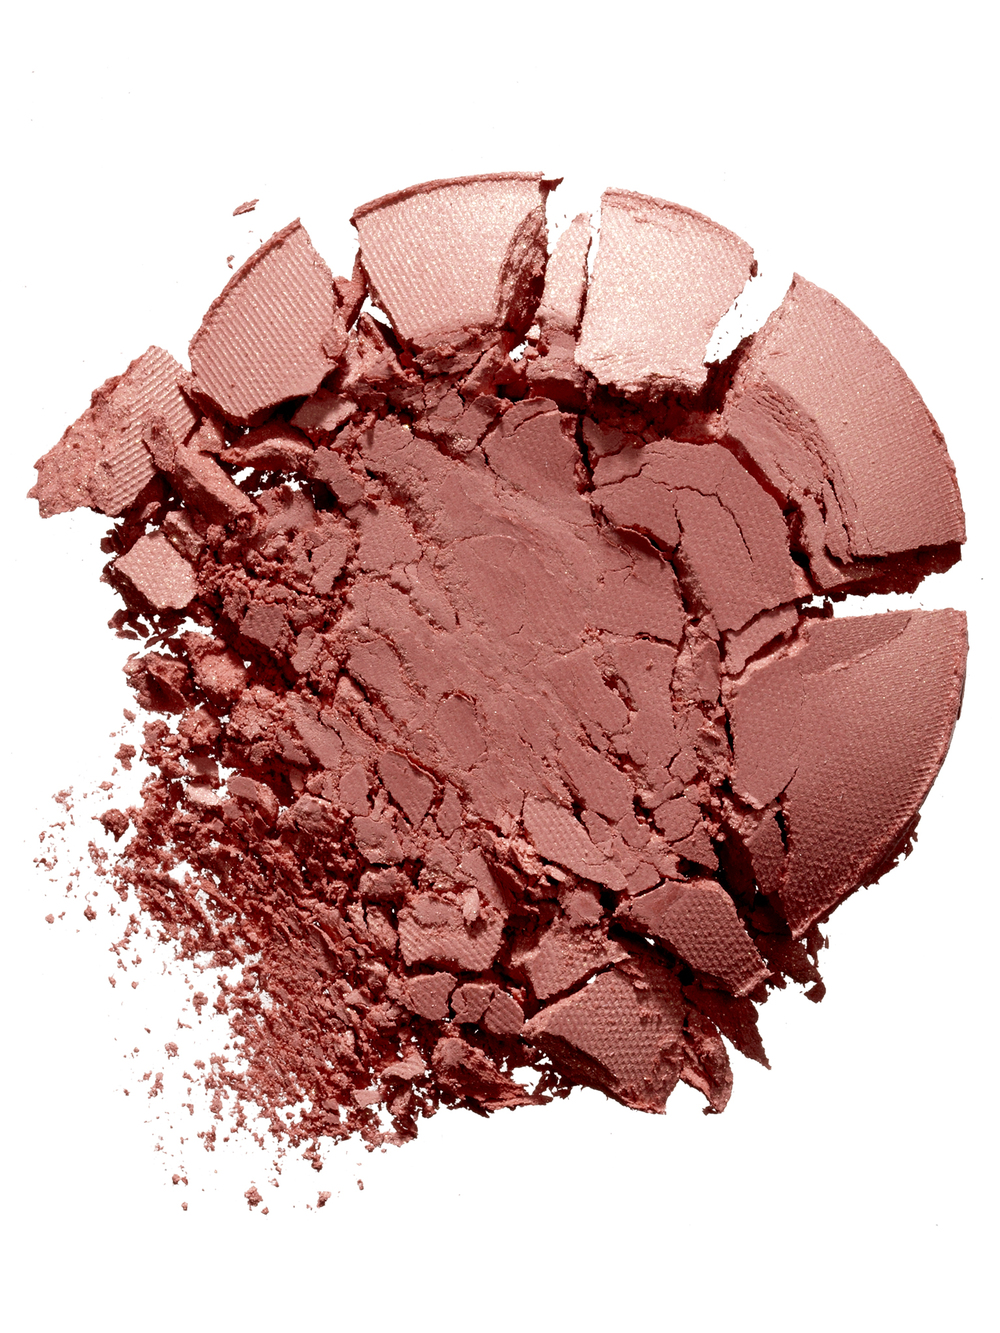 005-07-ChanelPowder-web.jpg